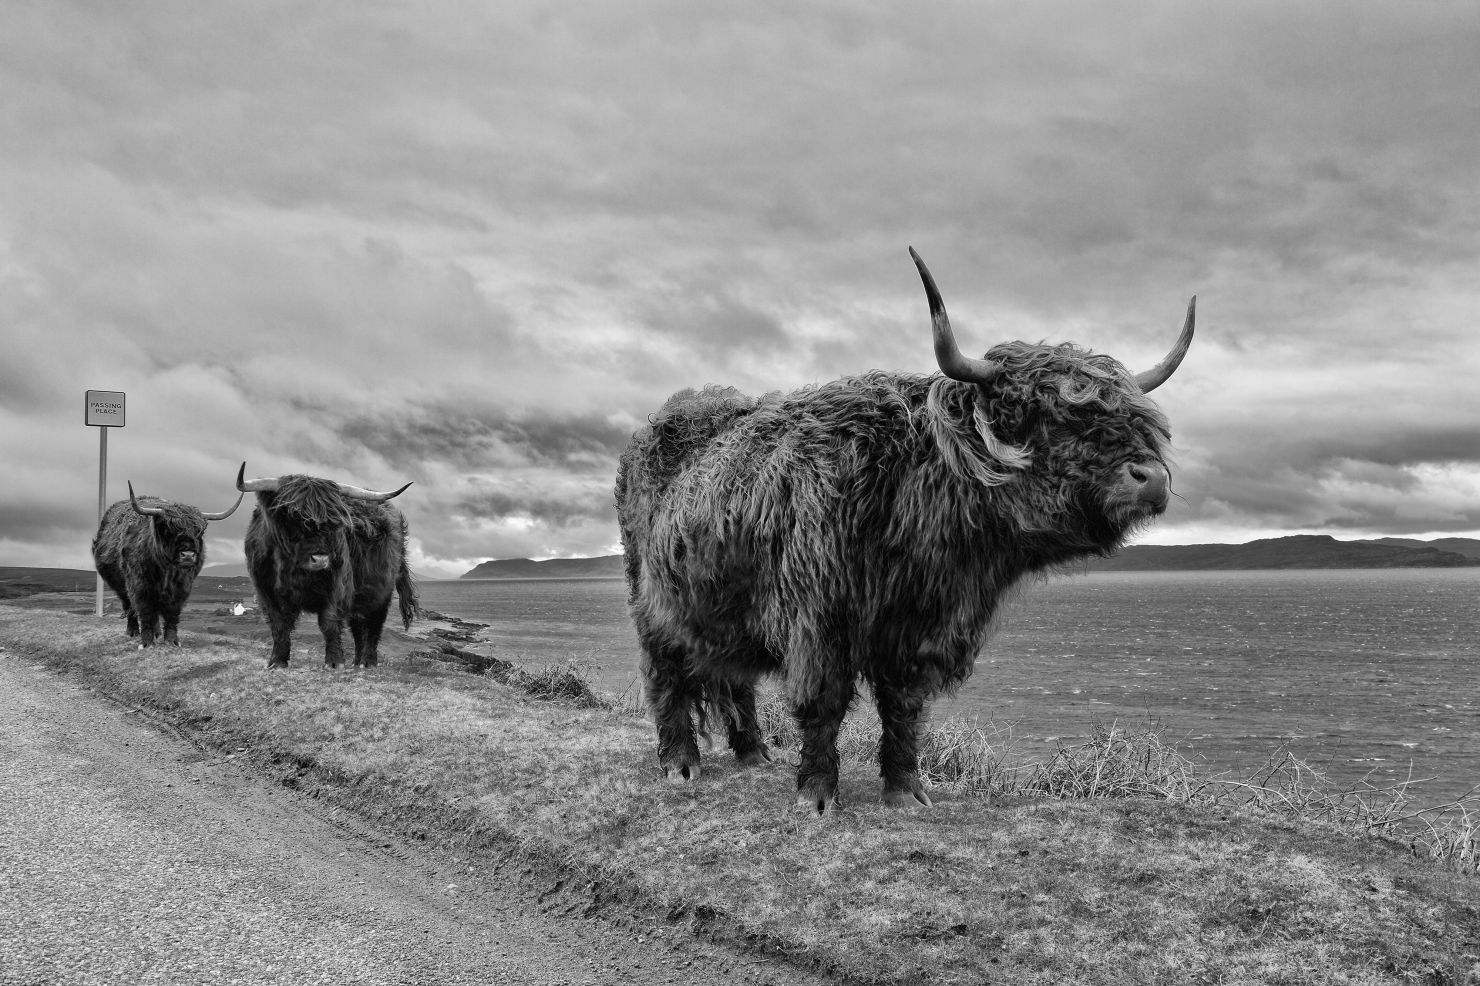 Highland cattle in Scotland